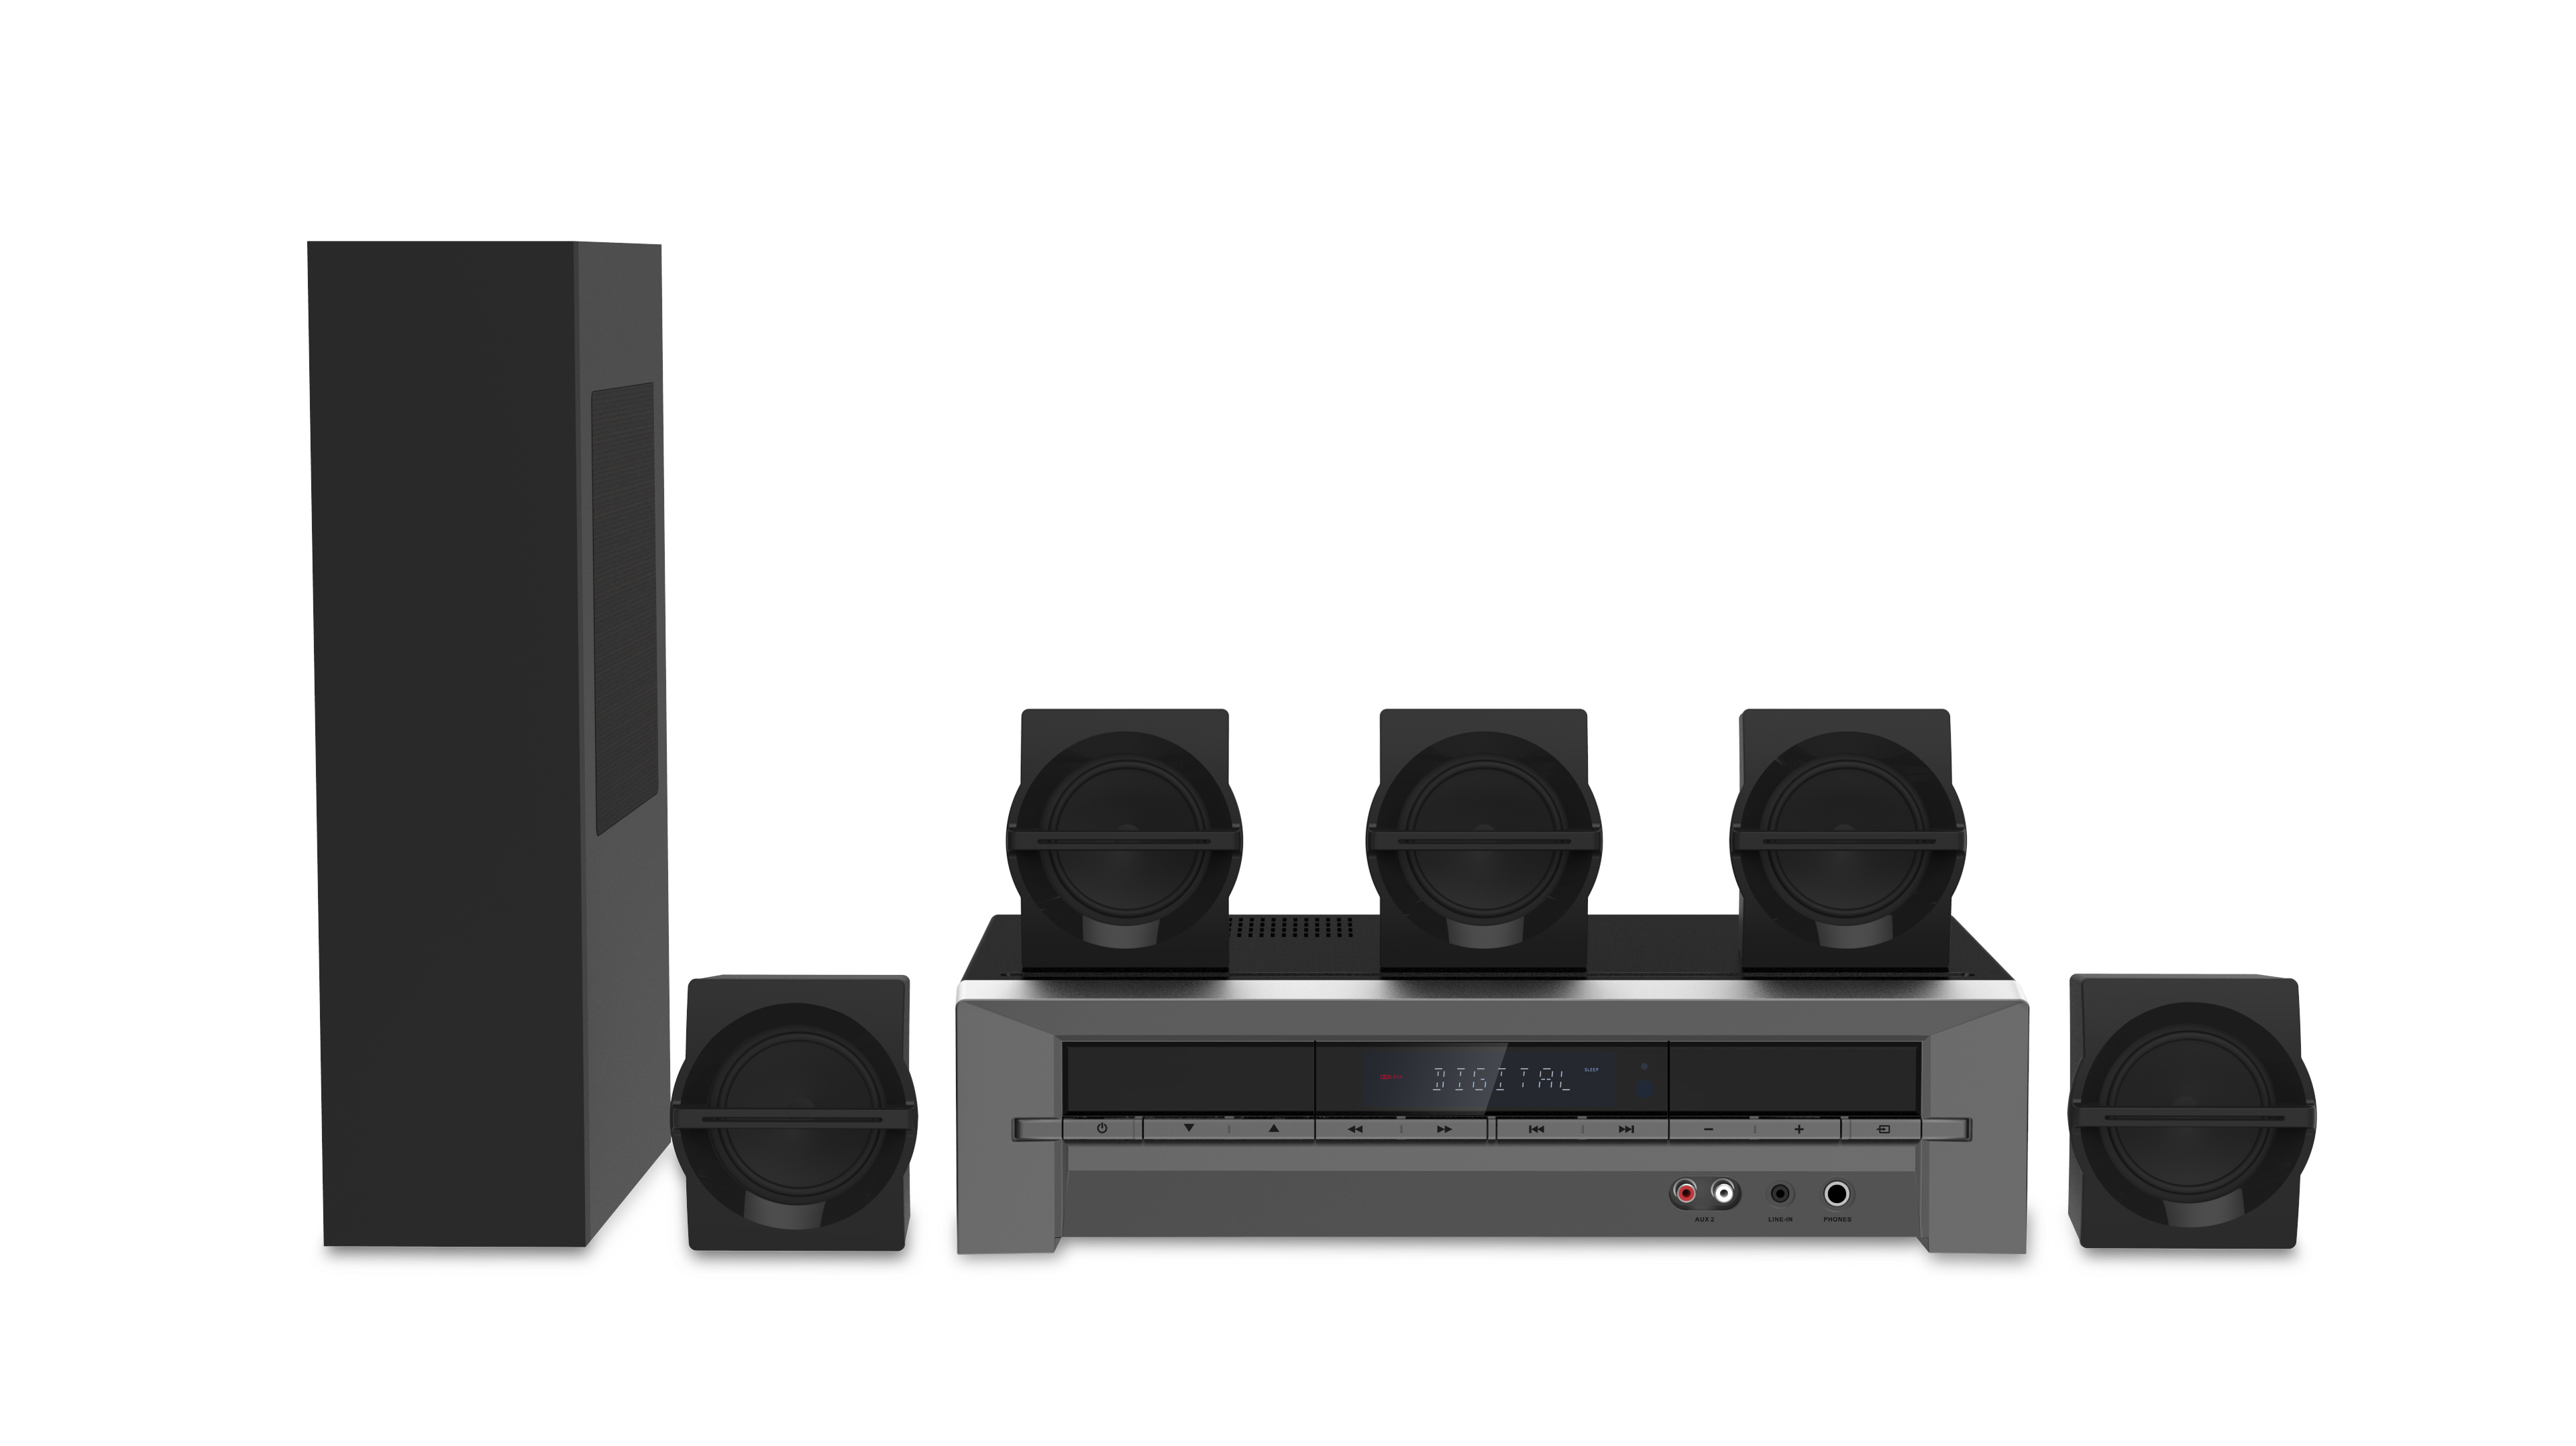 Blackweb 1000-Watt 5 1 Channel Receiver Home Theater System With BT